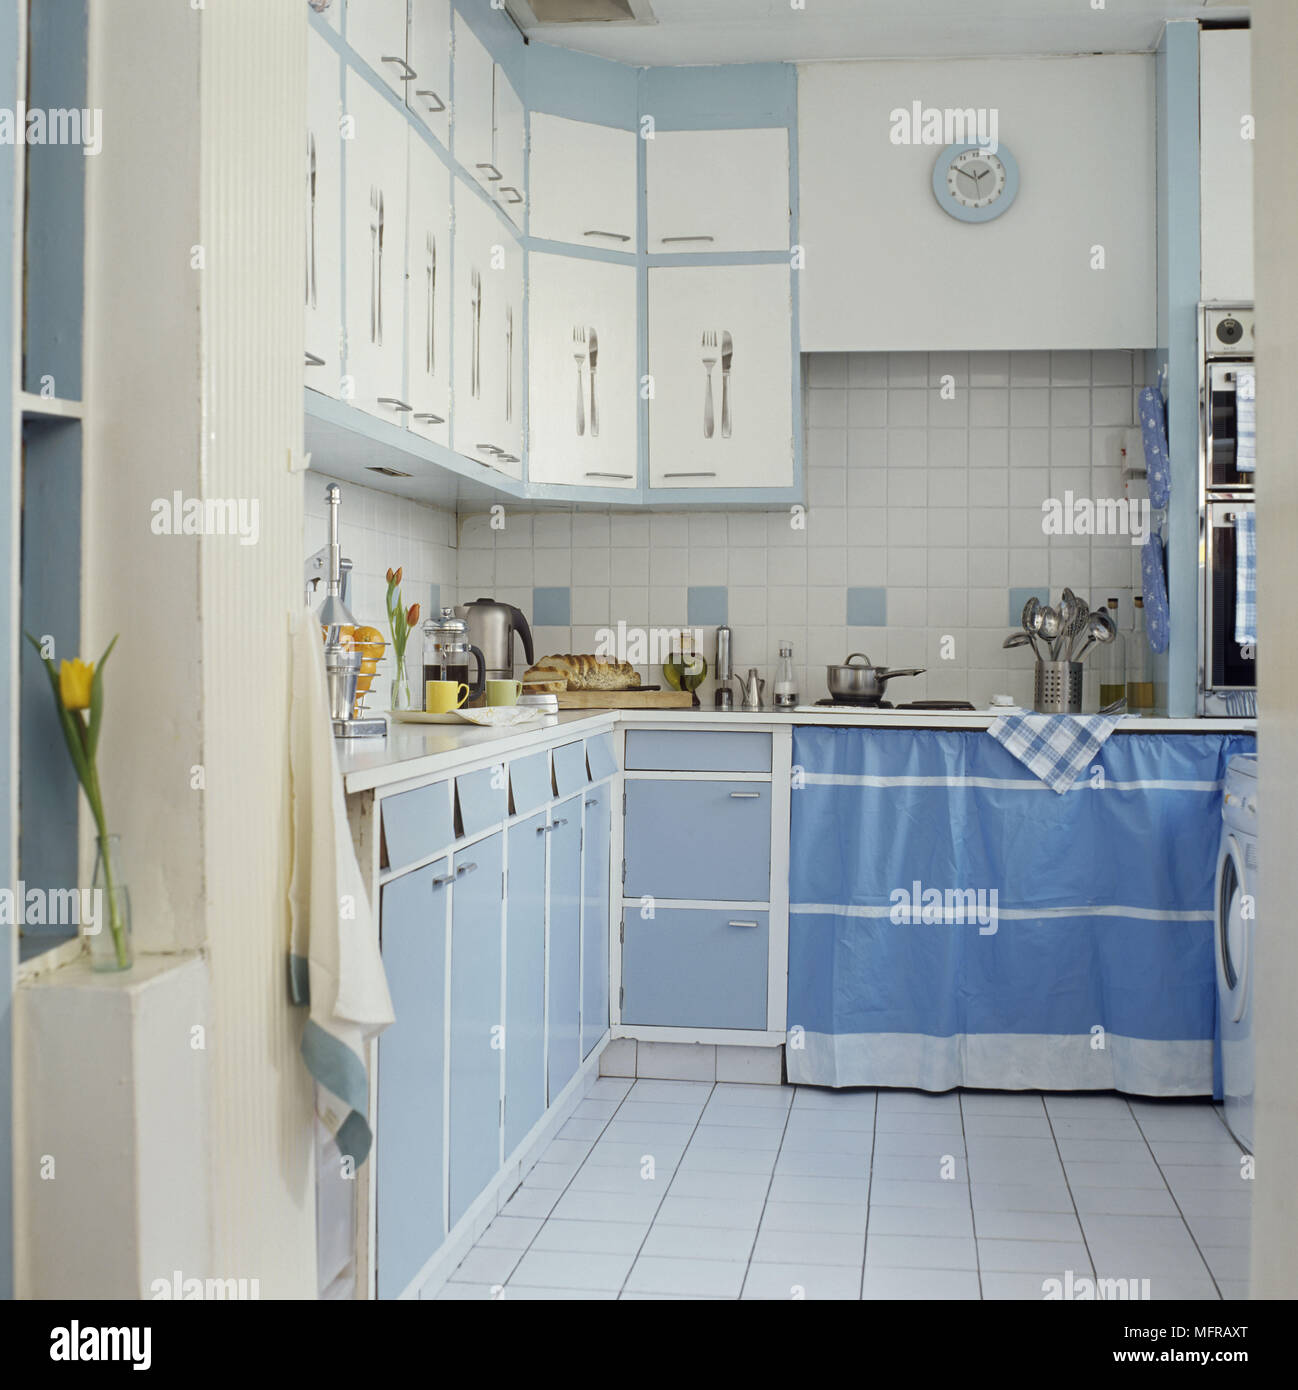 Kitchen with blue and white cupboard units and tiled walls Stock ...